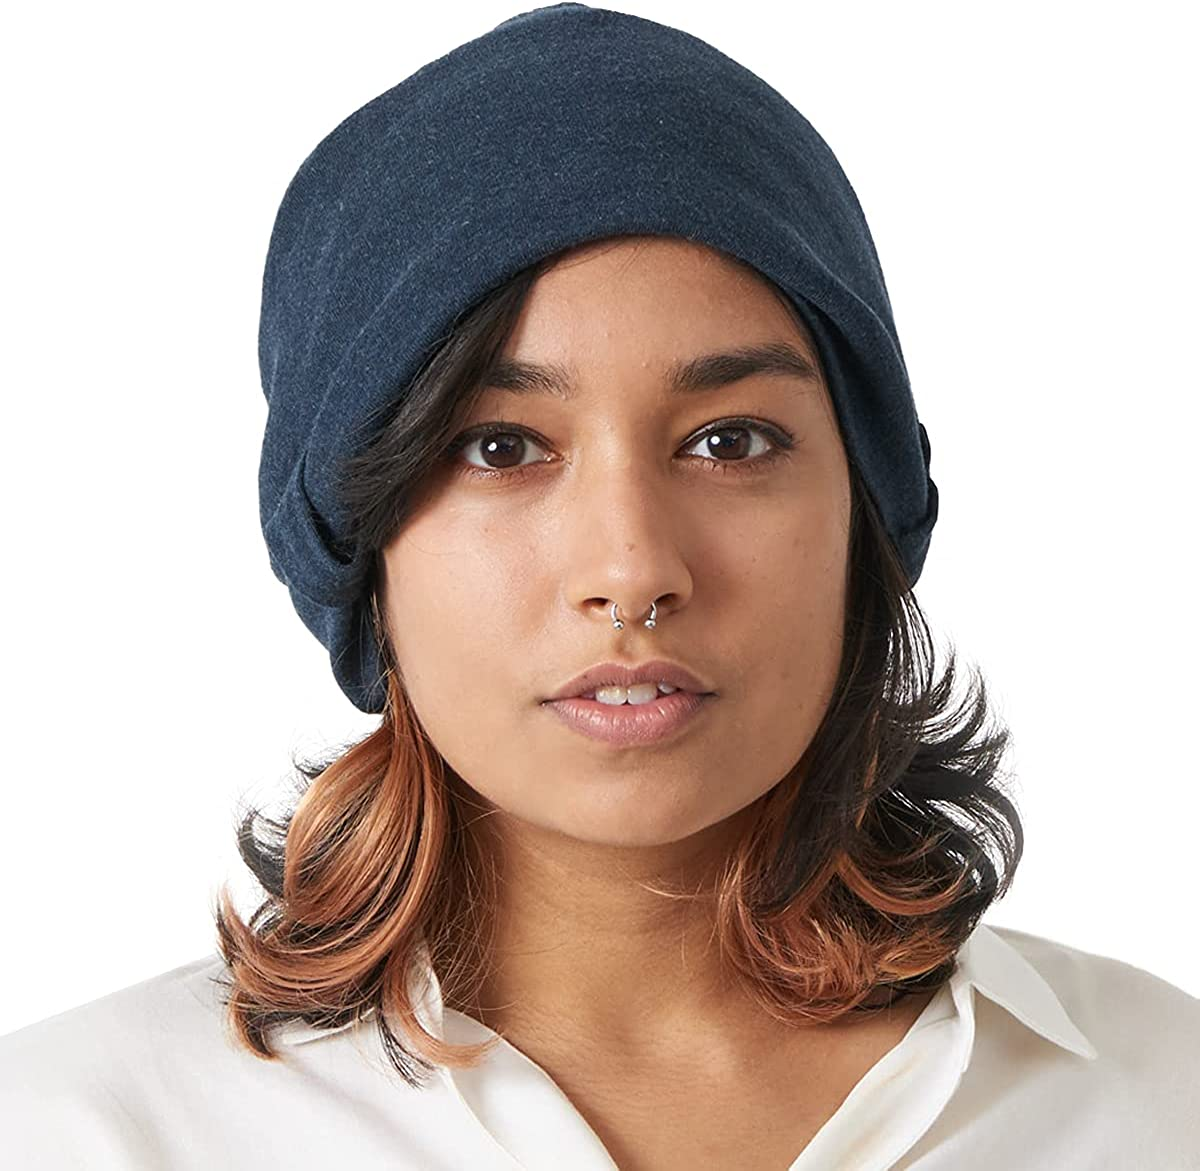 CHARM Organic Cotton Slouchy Beanie Womens Max 85% OFF - Soft Max 44% OFF Summer Slouch